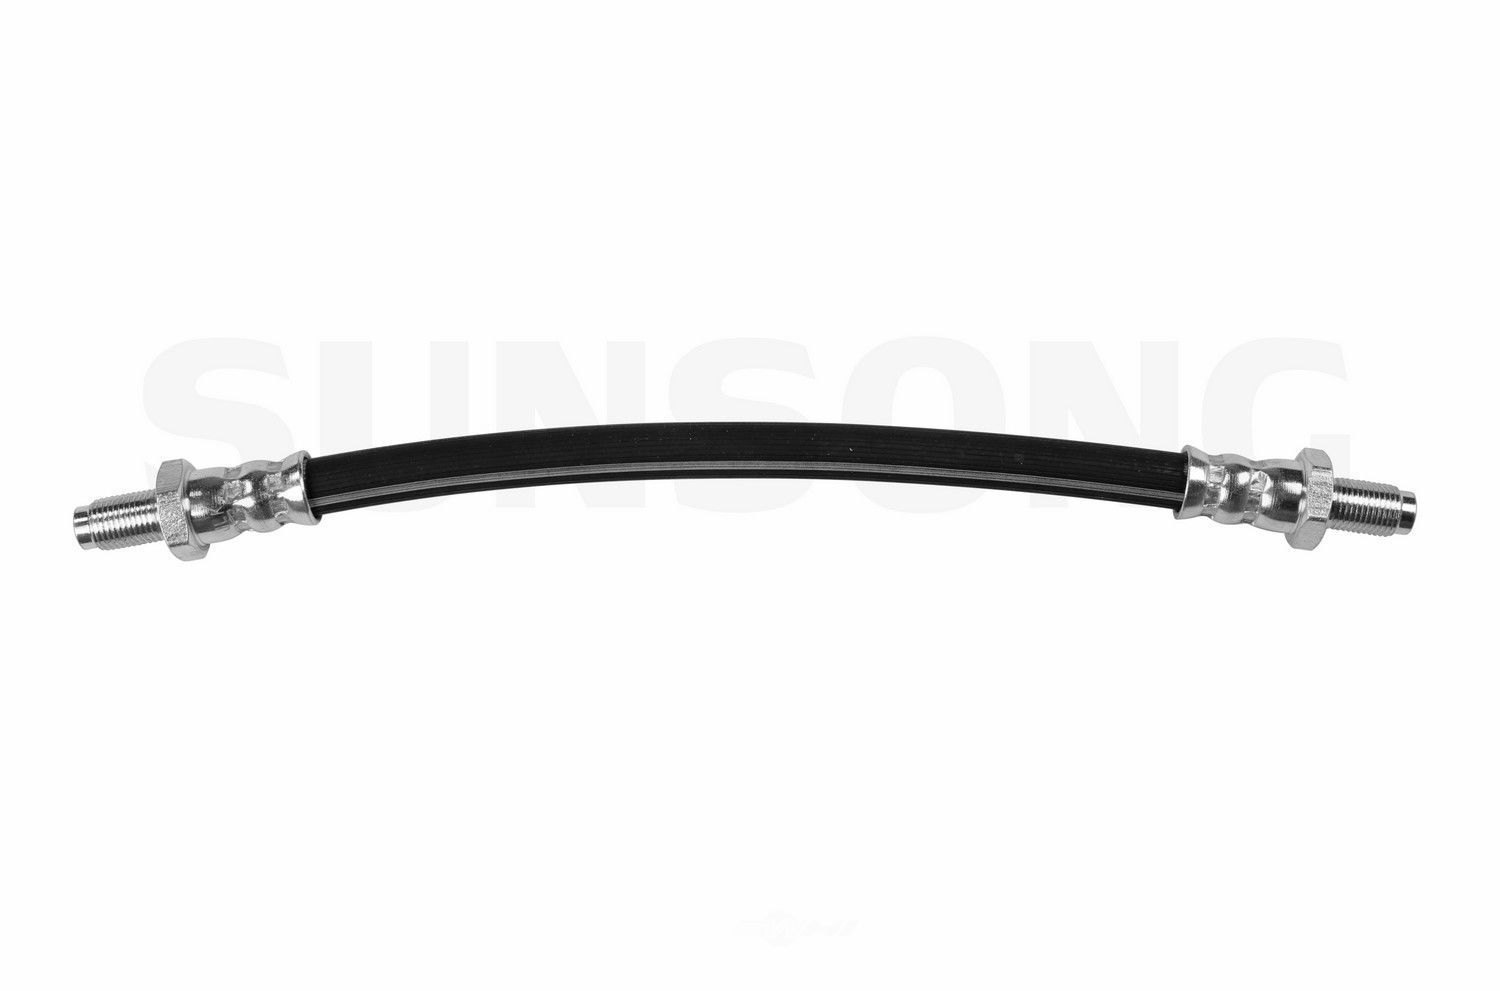 SUNSONG NORTH AMERICA - Brake Hydraulic Hose - SUG 2203634